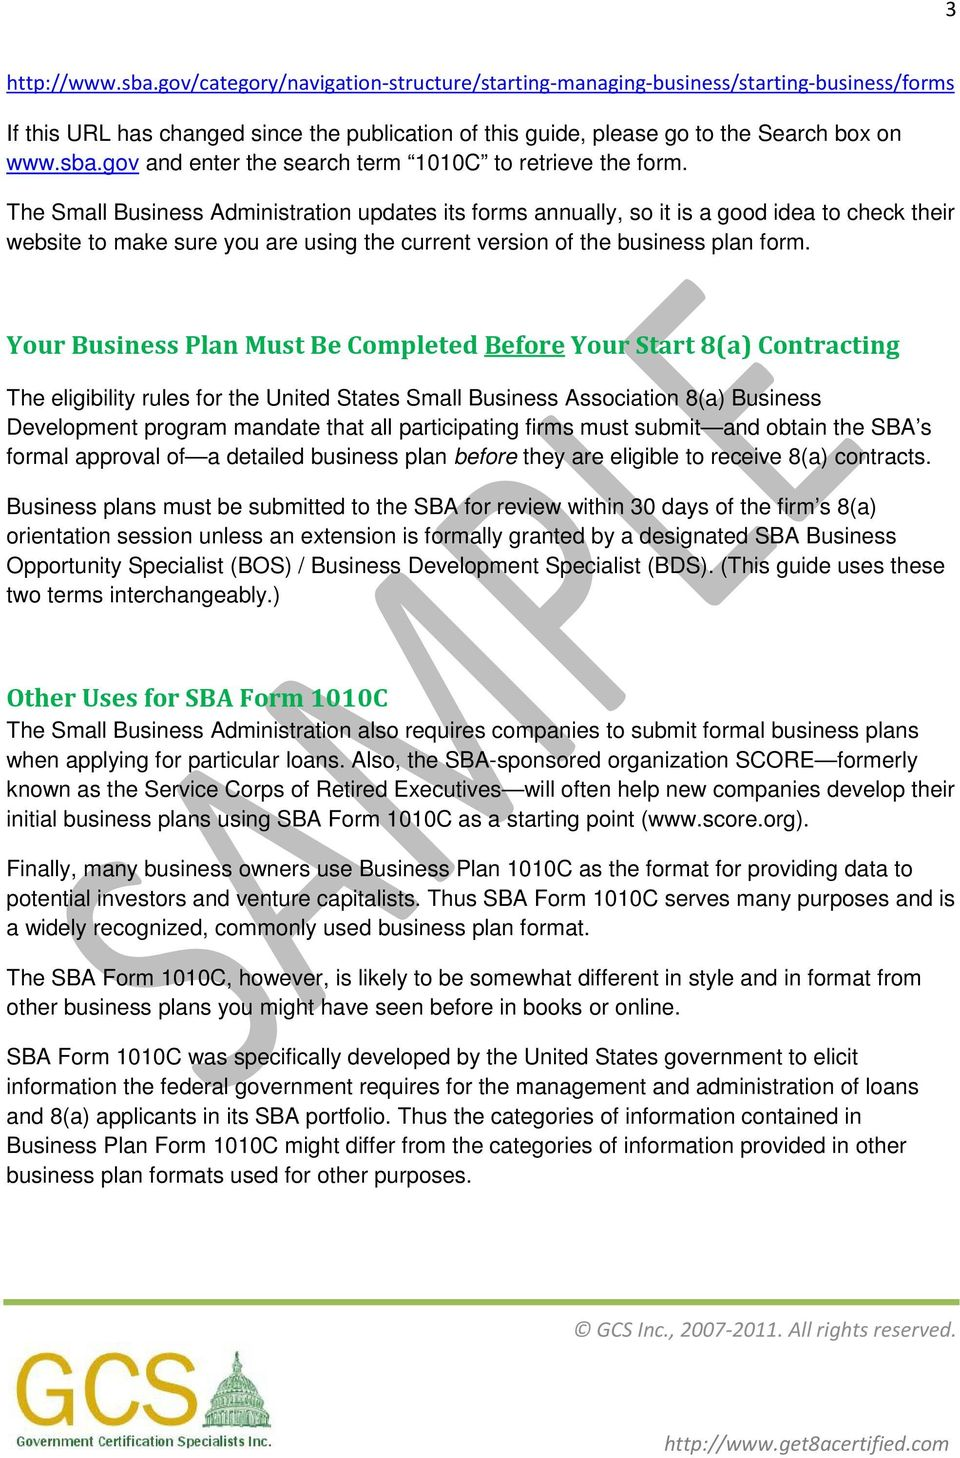 Small business administration sba business plan instruction guide the small business administration updates its forms annually so it is a good idea to wajeb Choice Image